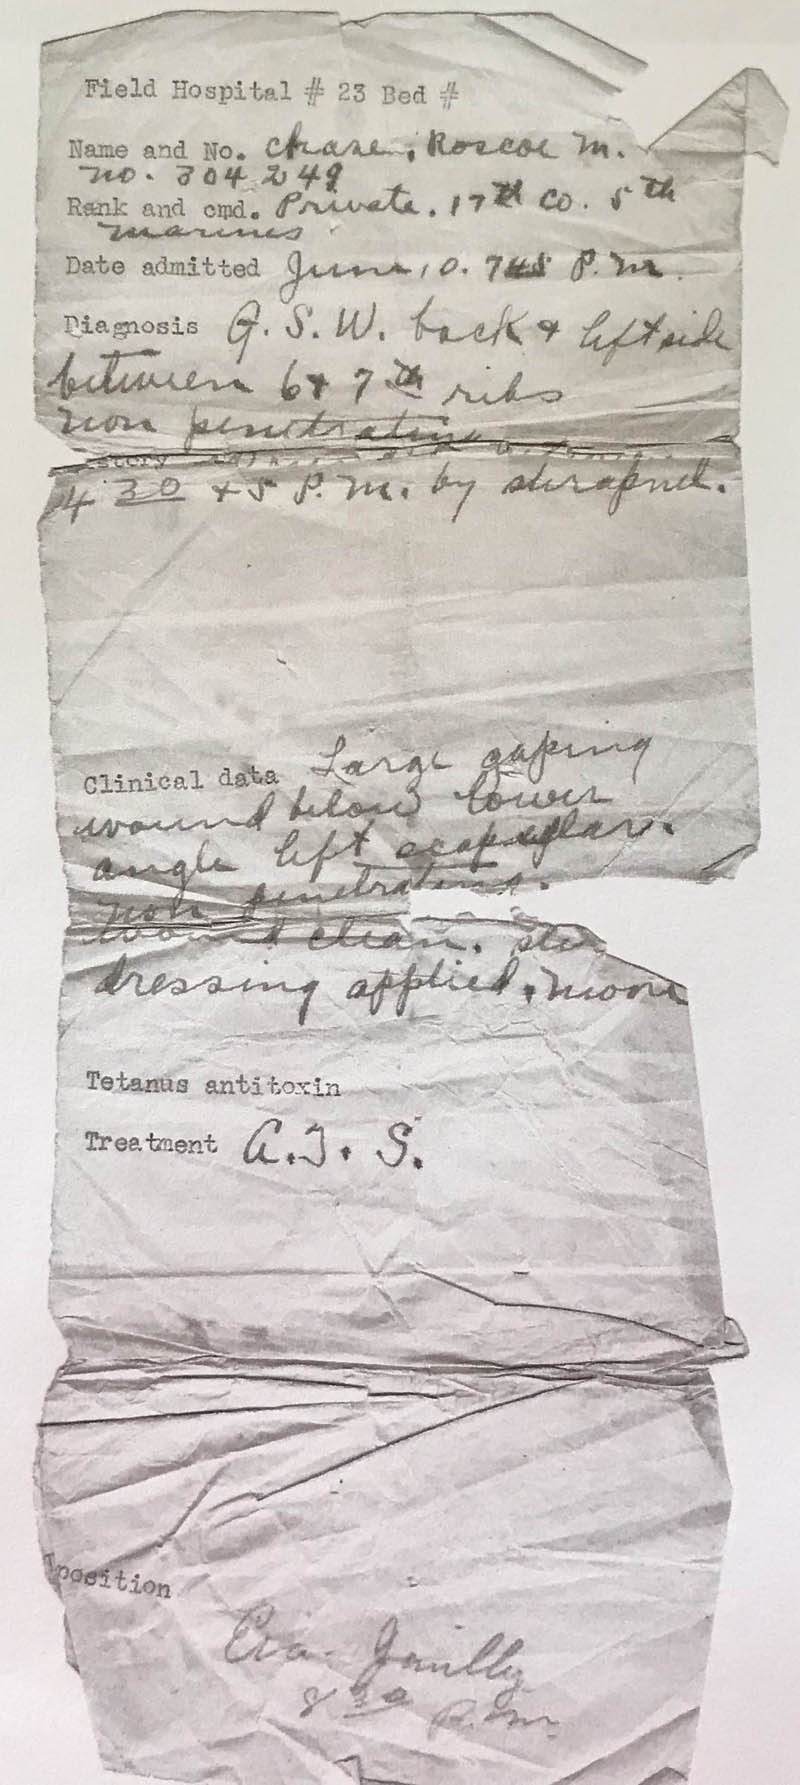 A military record contains notes about Roscoe Chase's gunshot wound at Belleau Wood in World War I. (Photo courtesy Mary Ann Chase Vinton)